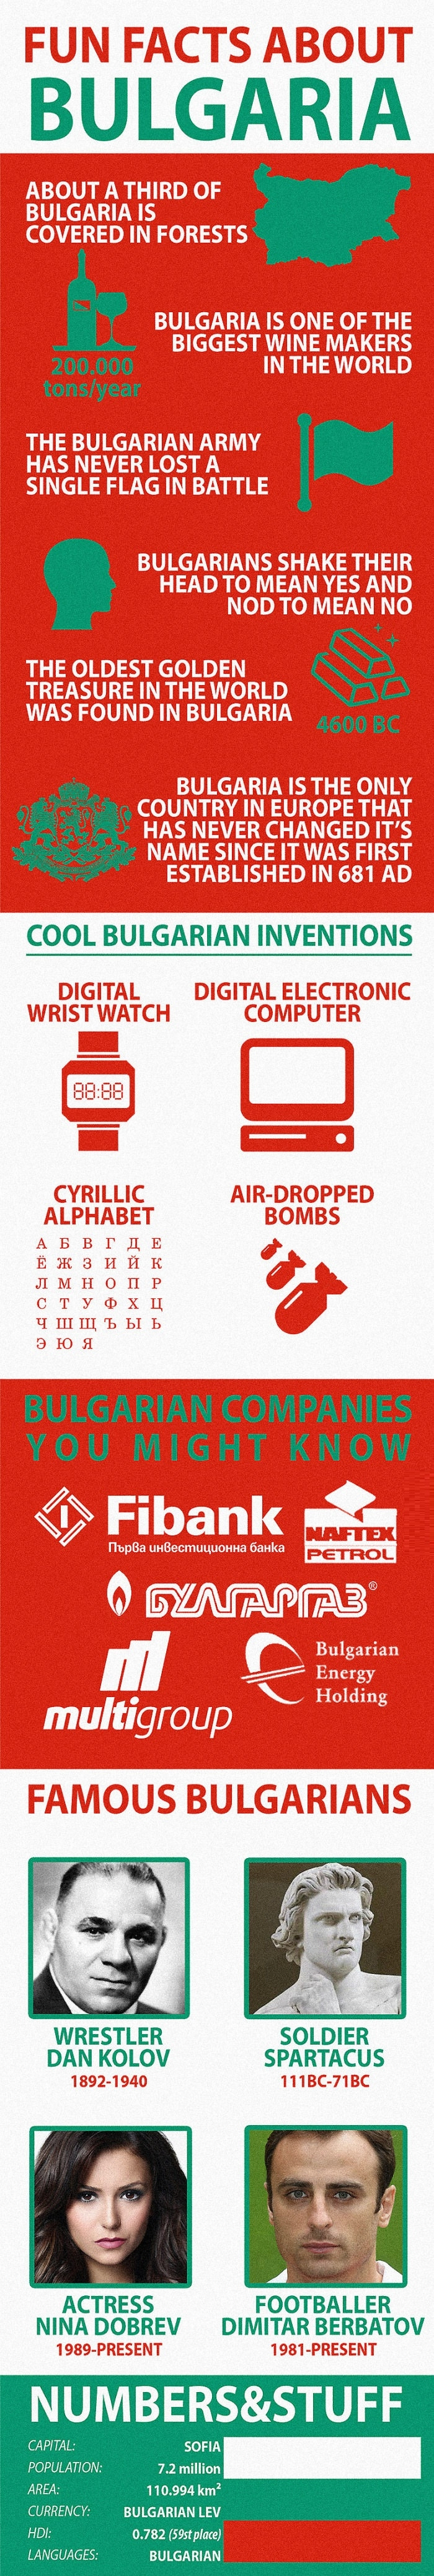 Facts about Bulgaria